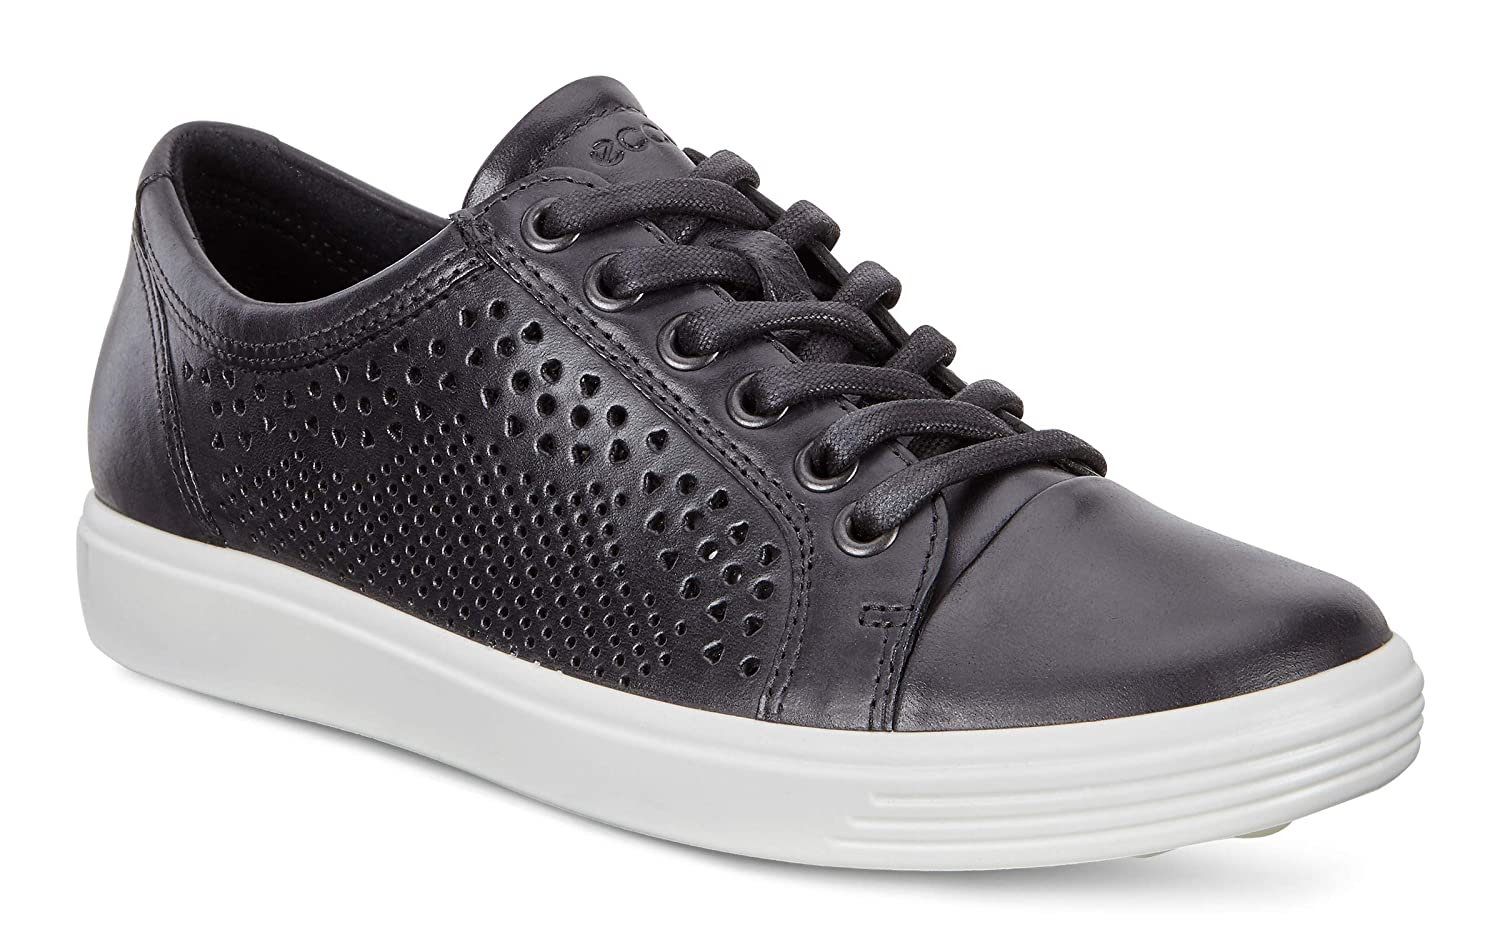 BLACK ECCO Womens Soft 7 Lace Cut Leather Fashion Sneakers